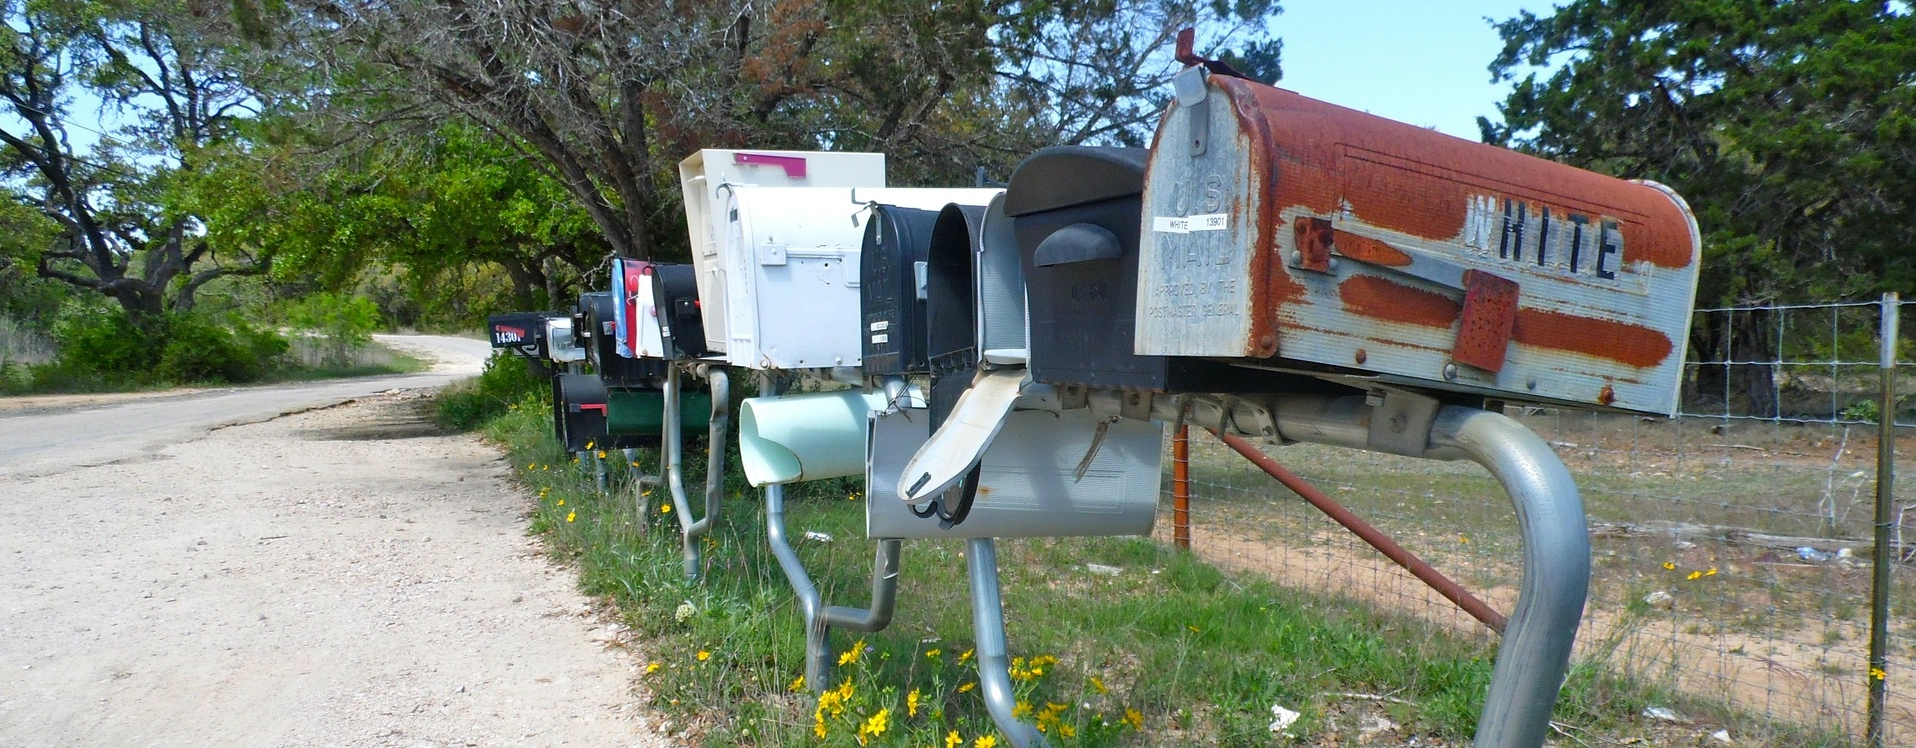 several mail boxes